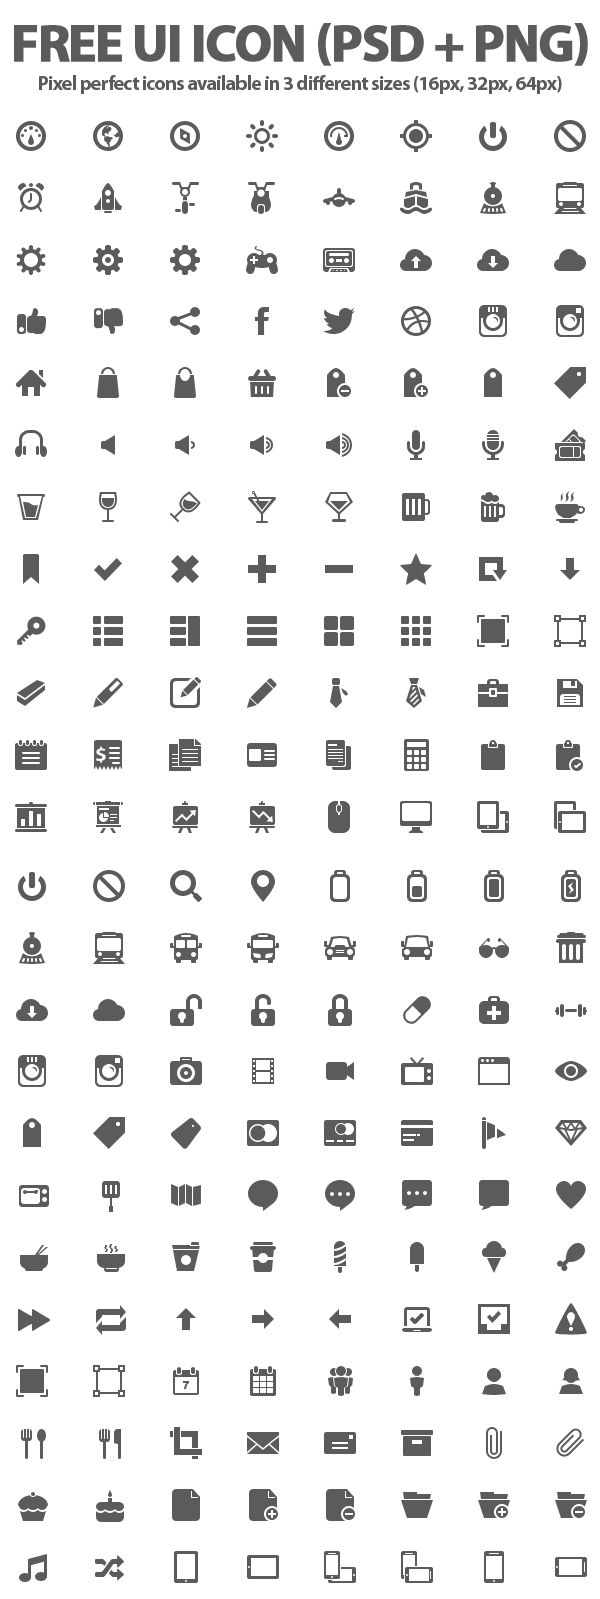 500+ Free UI Icons (PSD + PNG)